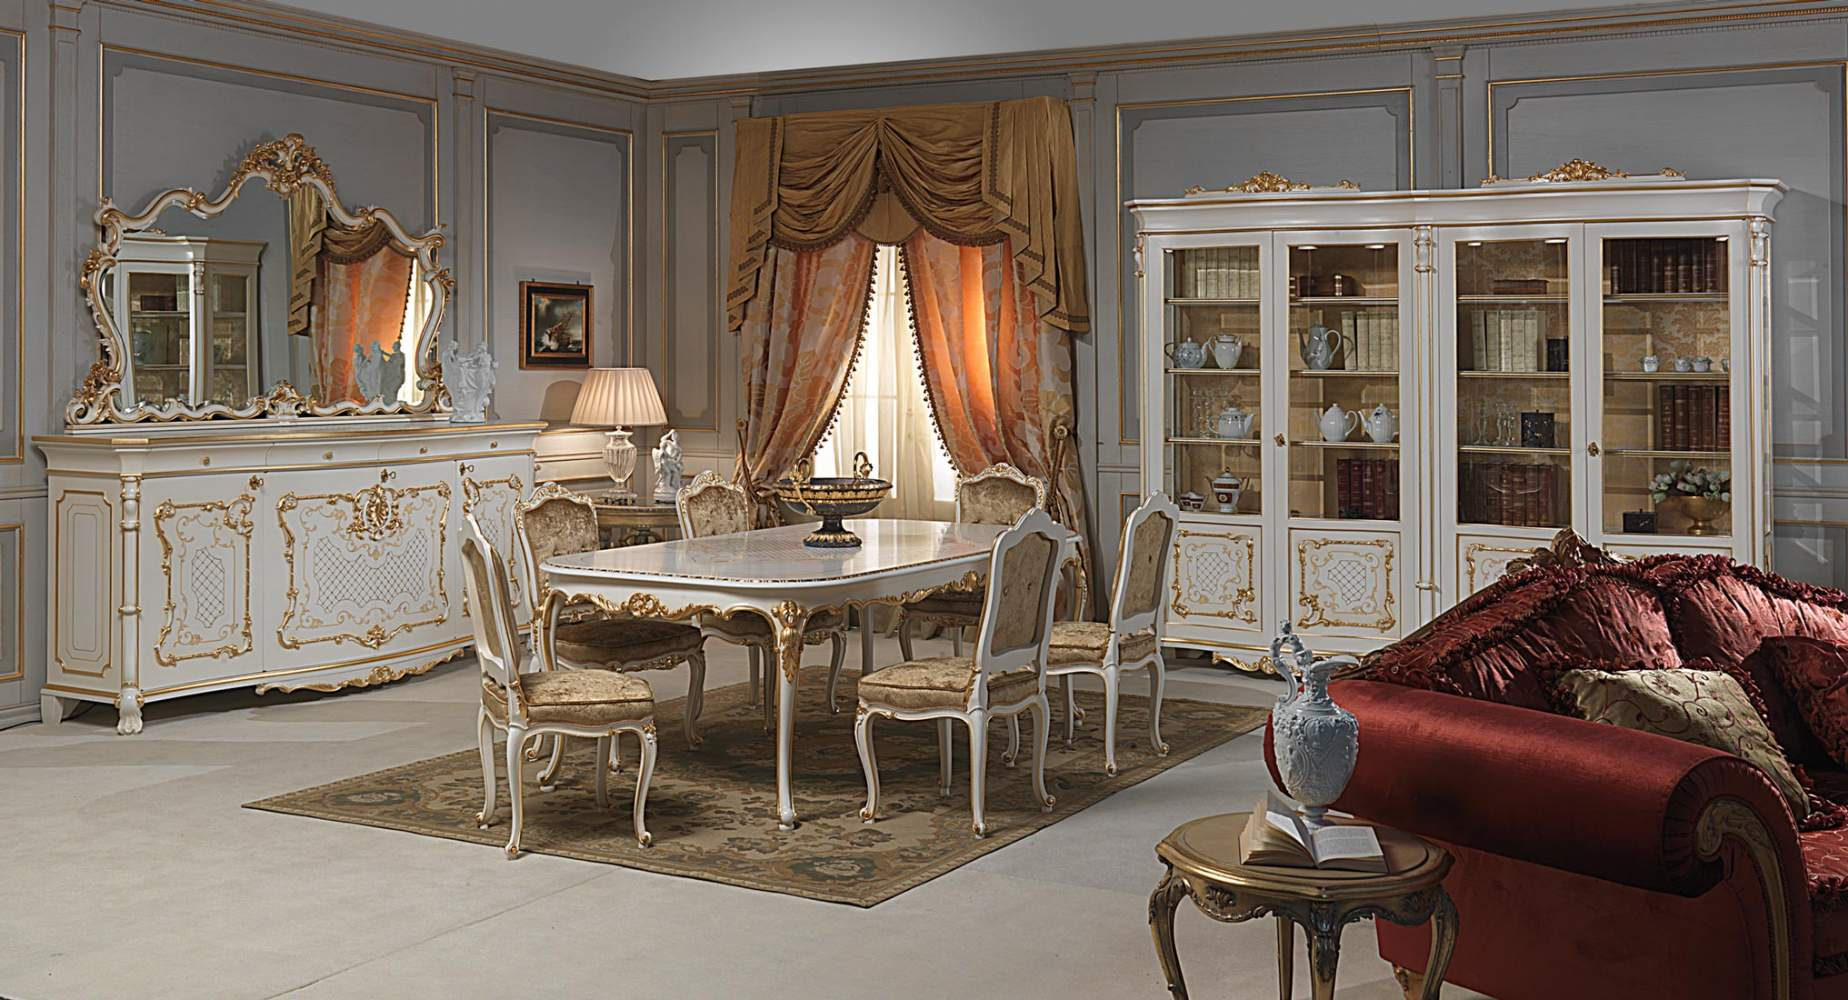 Dining room in Louis XV style: table and carved chairs, sideboard with ...